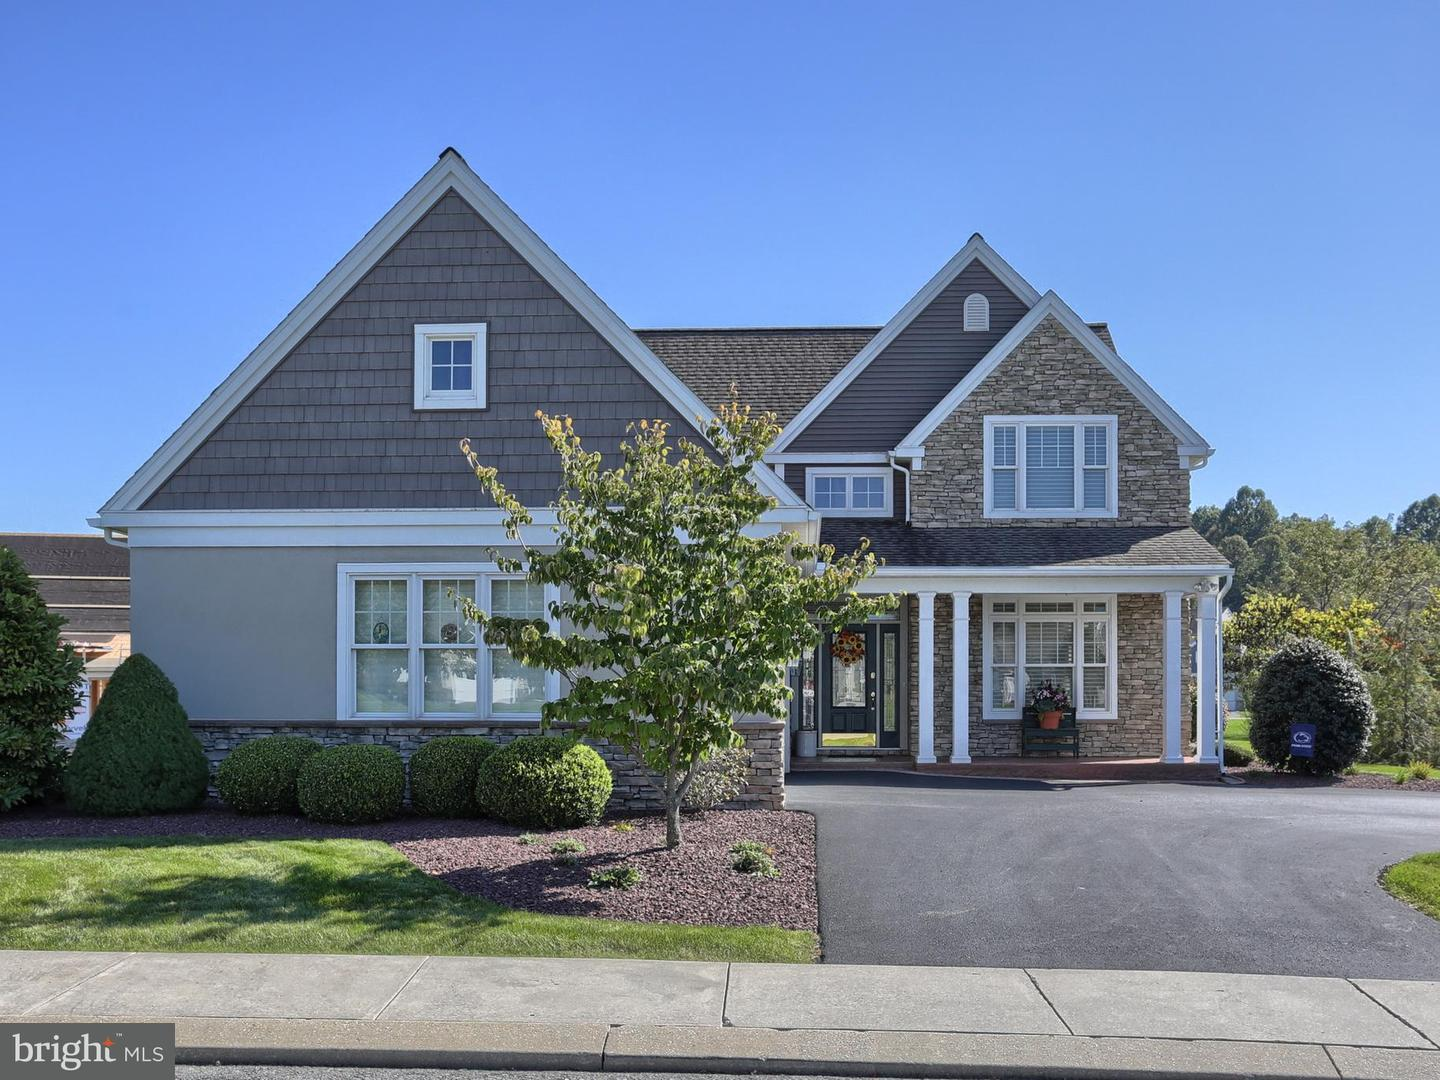 Homes For Sale In The Alden Place Subdivision Lebanon